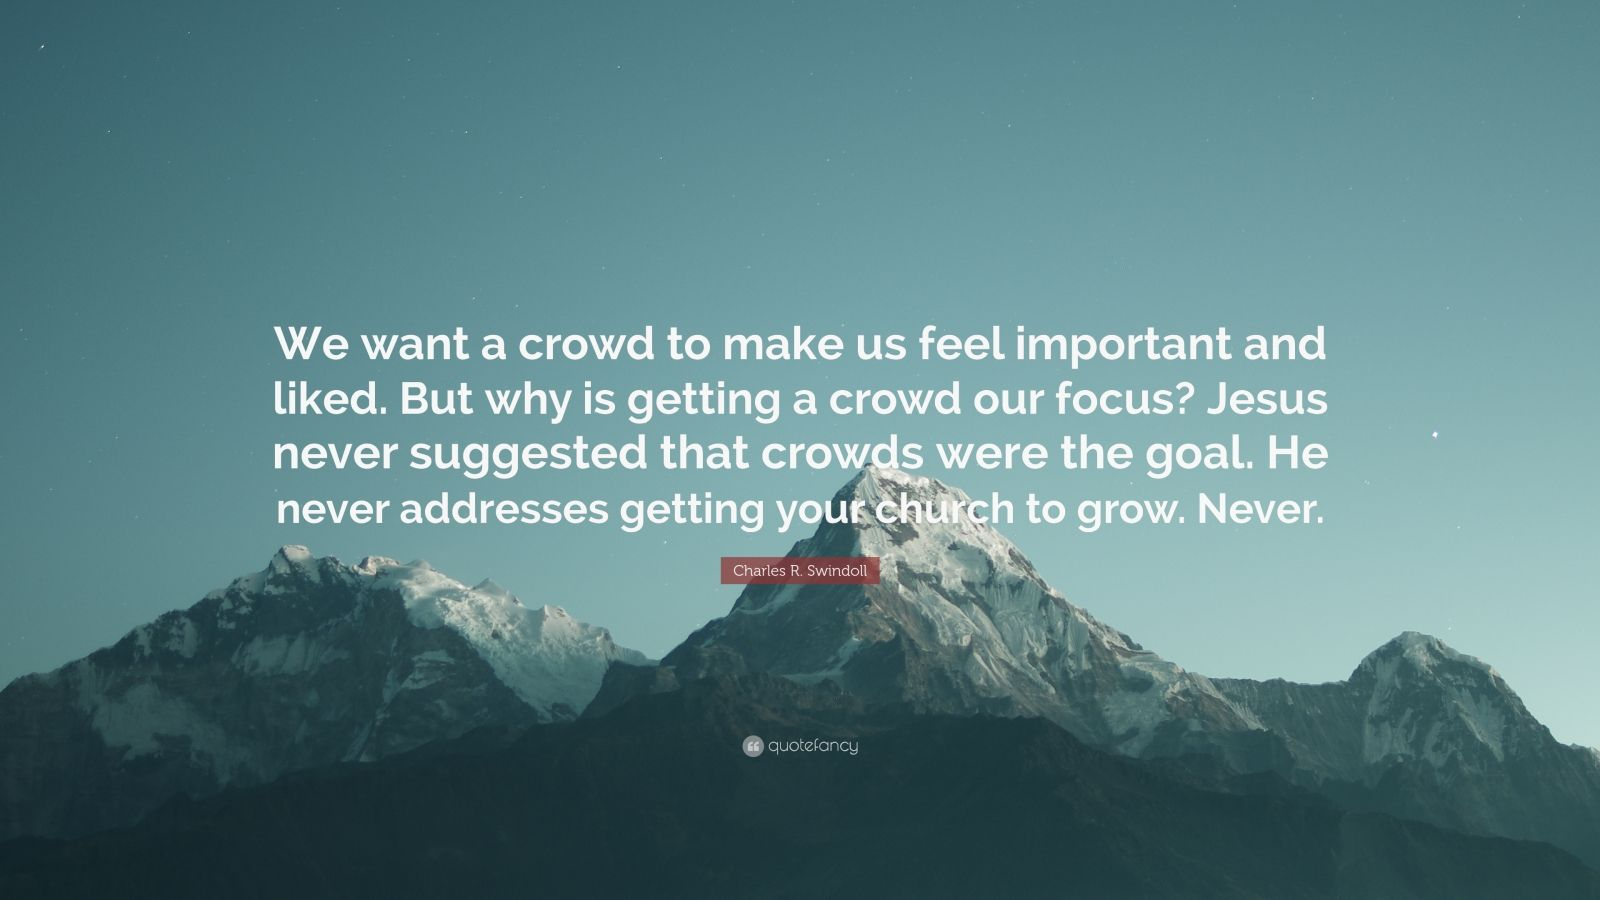 """Charles R. Swindoll Quote: """"We want a crowd to make us feel important and liked. But why is getting a crowd our focus? Jesus never suggested that crowds were the goal. He never addresses getting your church to grow. Never."""""""